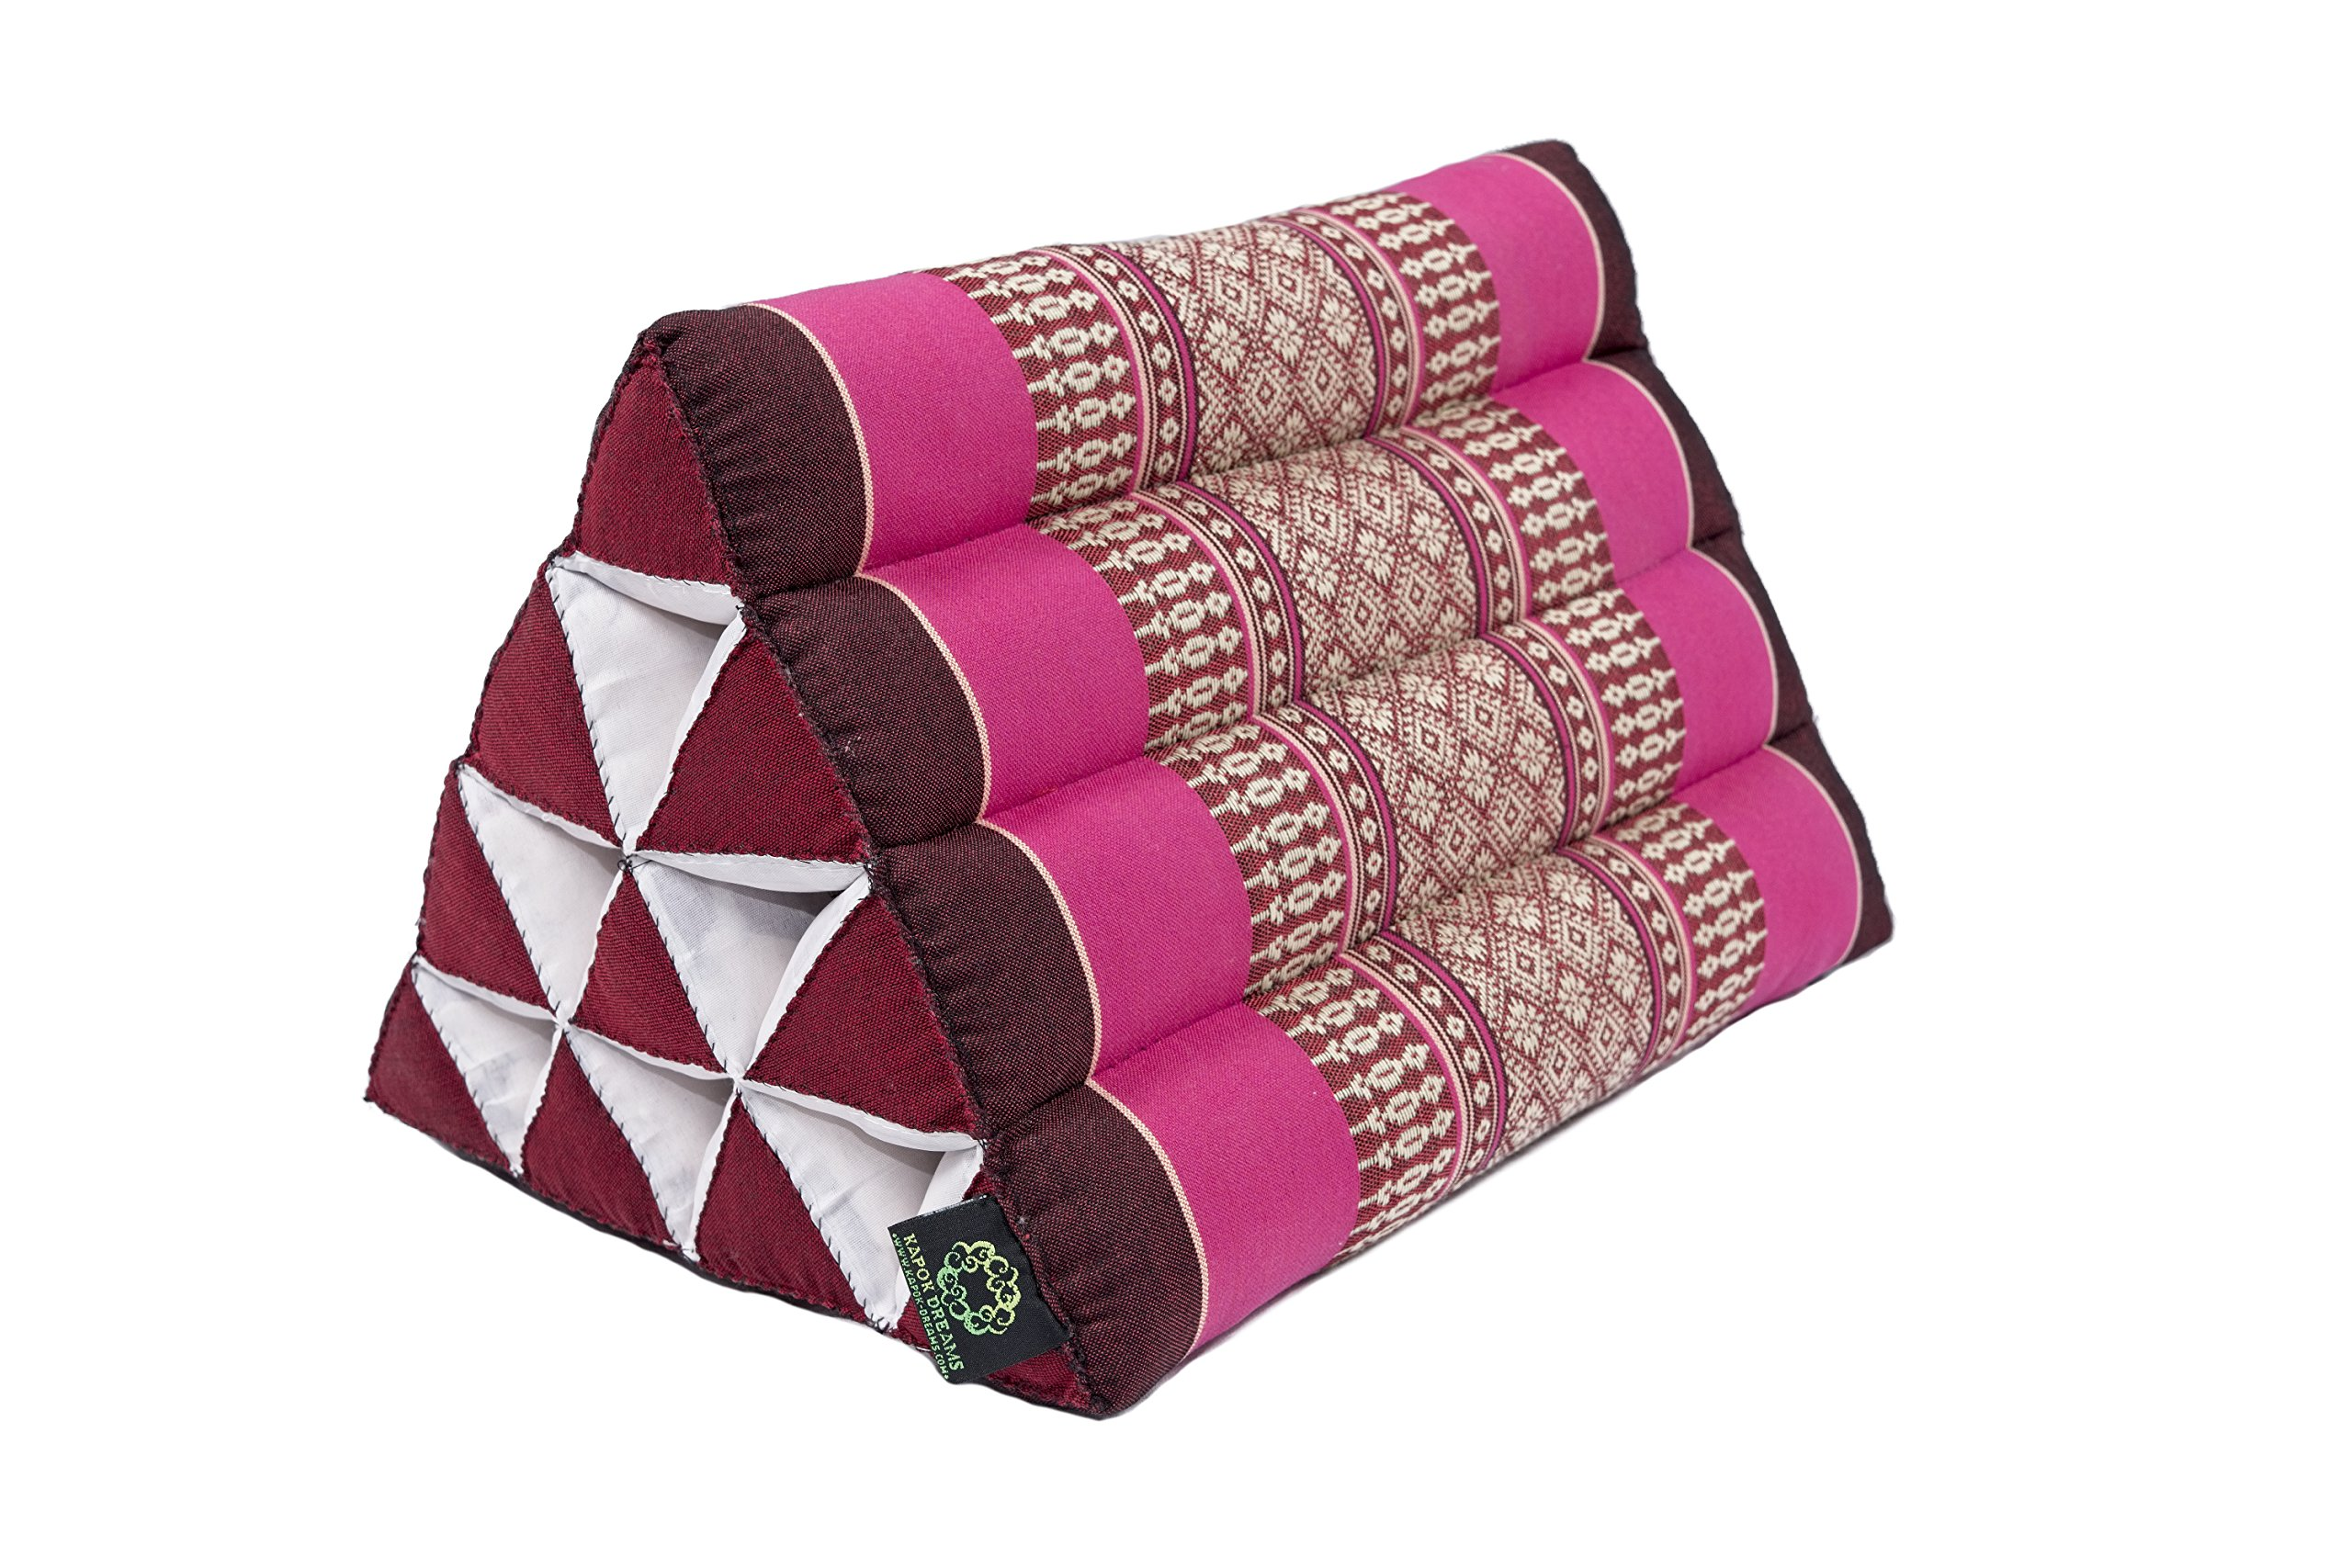 Kapok Dreams Thai Triangle Pillow 13''x8'', Triangular Cushion from Thailand (medium size), 100% Kapok-Stuffing, Berry Colors Red Pink